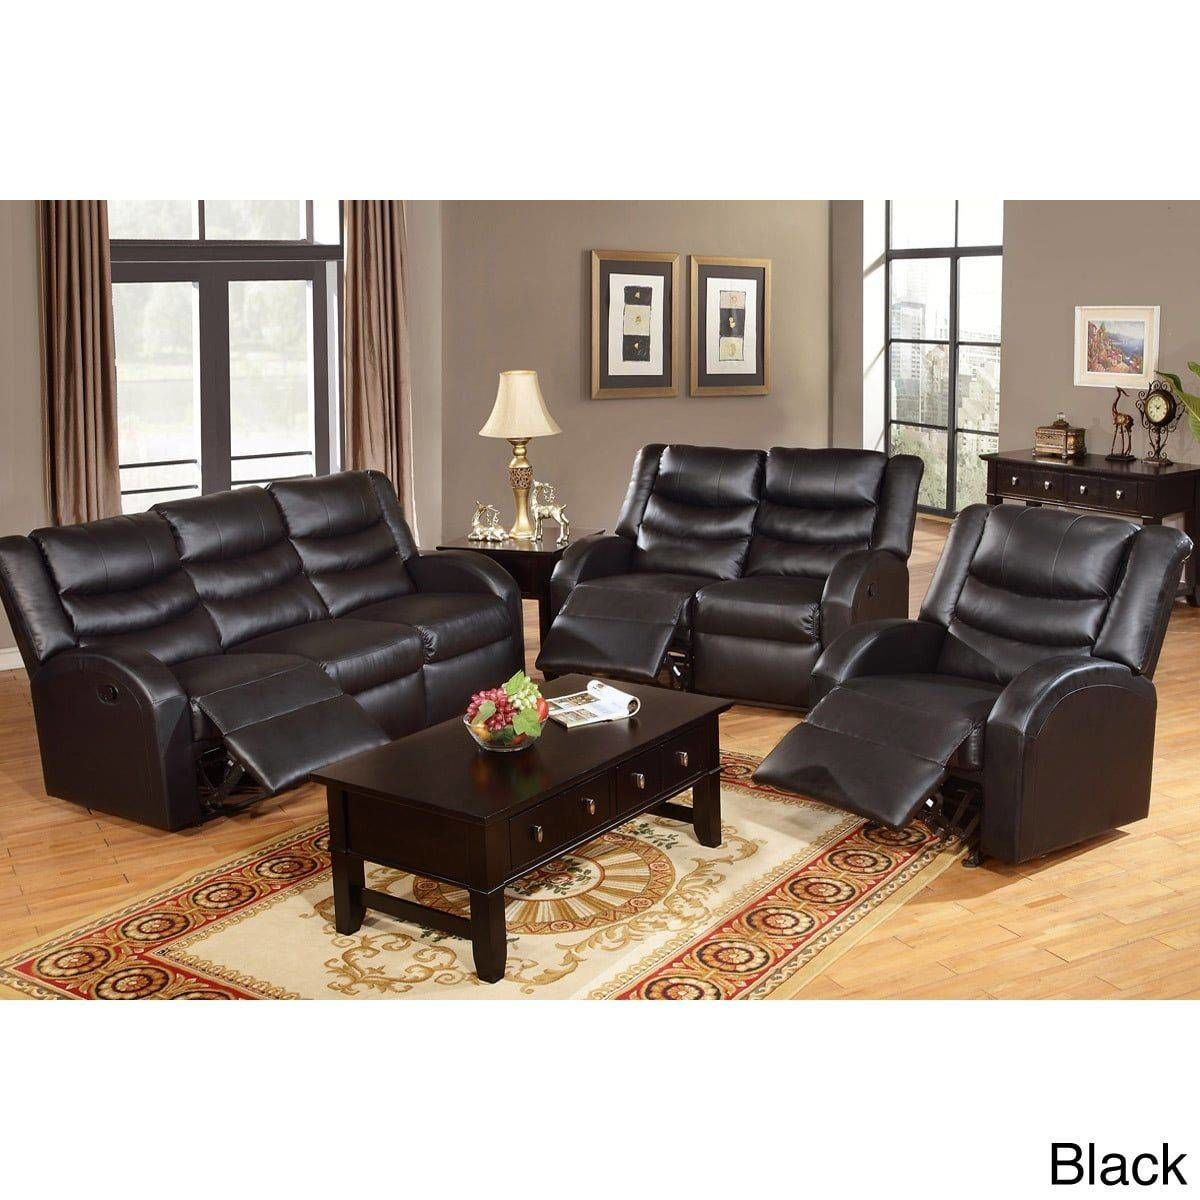 lovely serta sofa and loveseat picture-Contemporary Serta sofa and Loveseat Picture